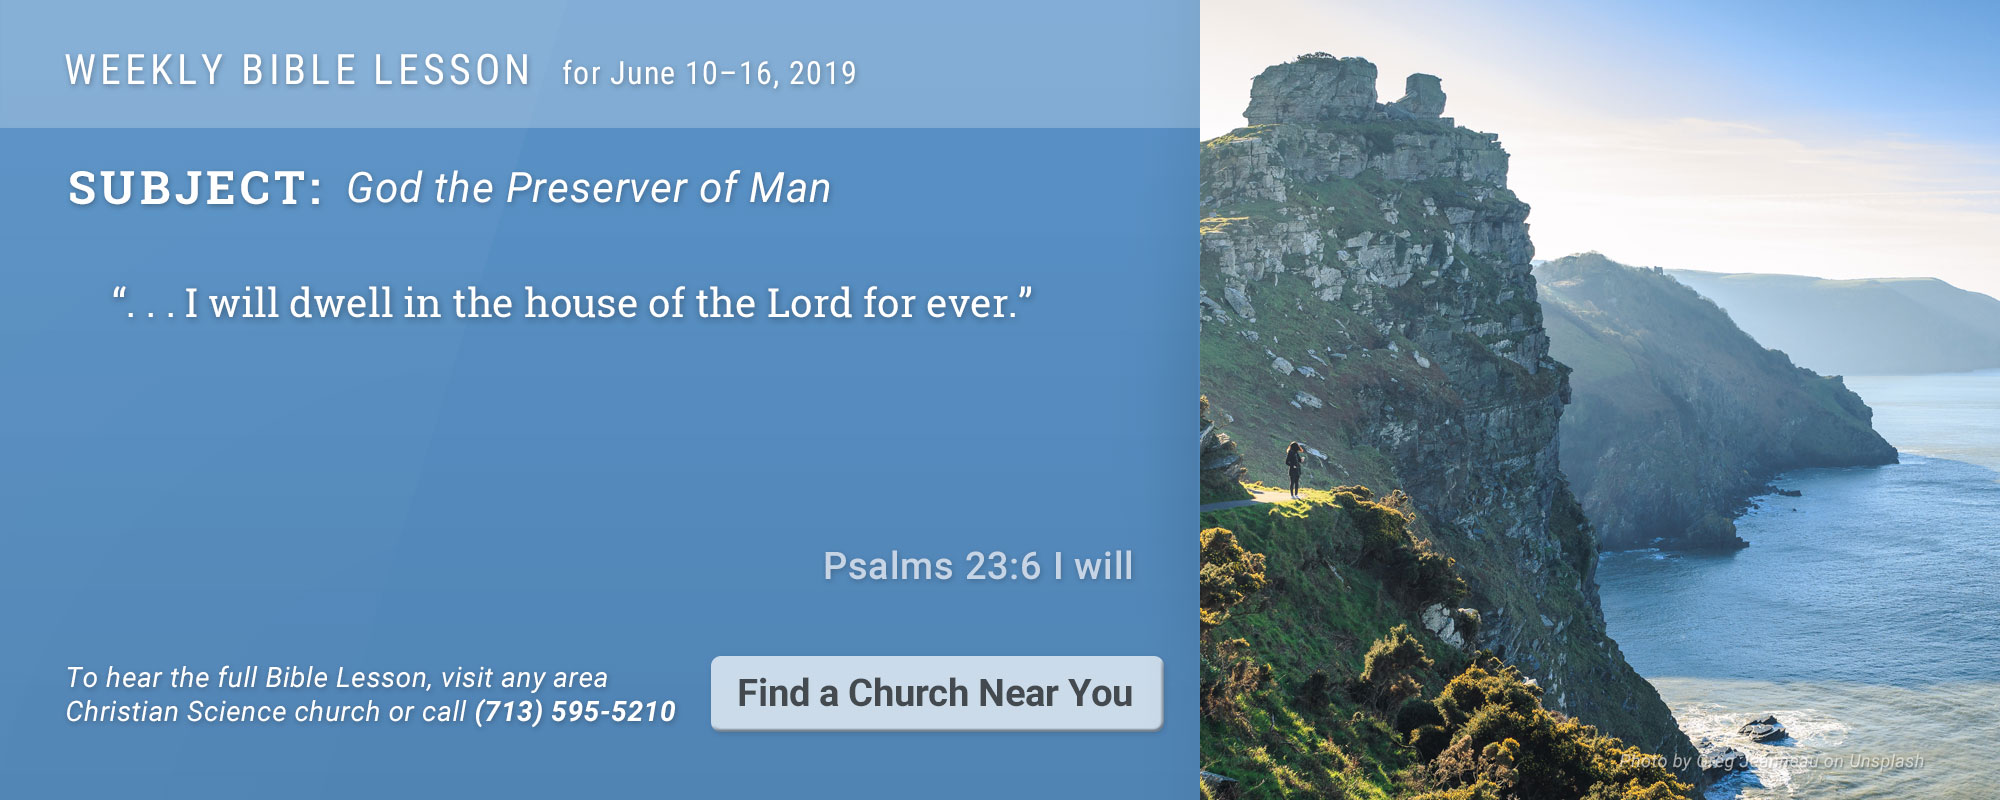 Bible Lesson Golden Text 20190610